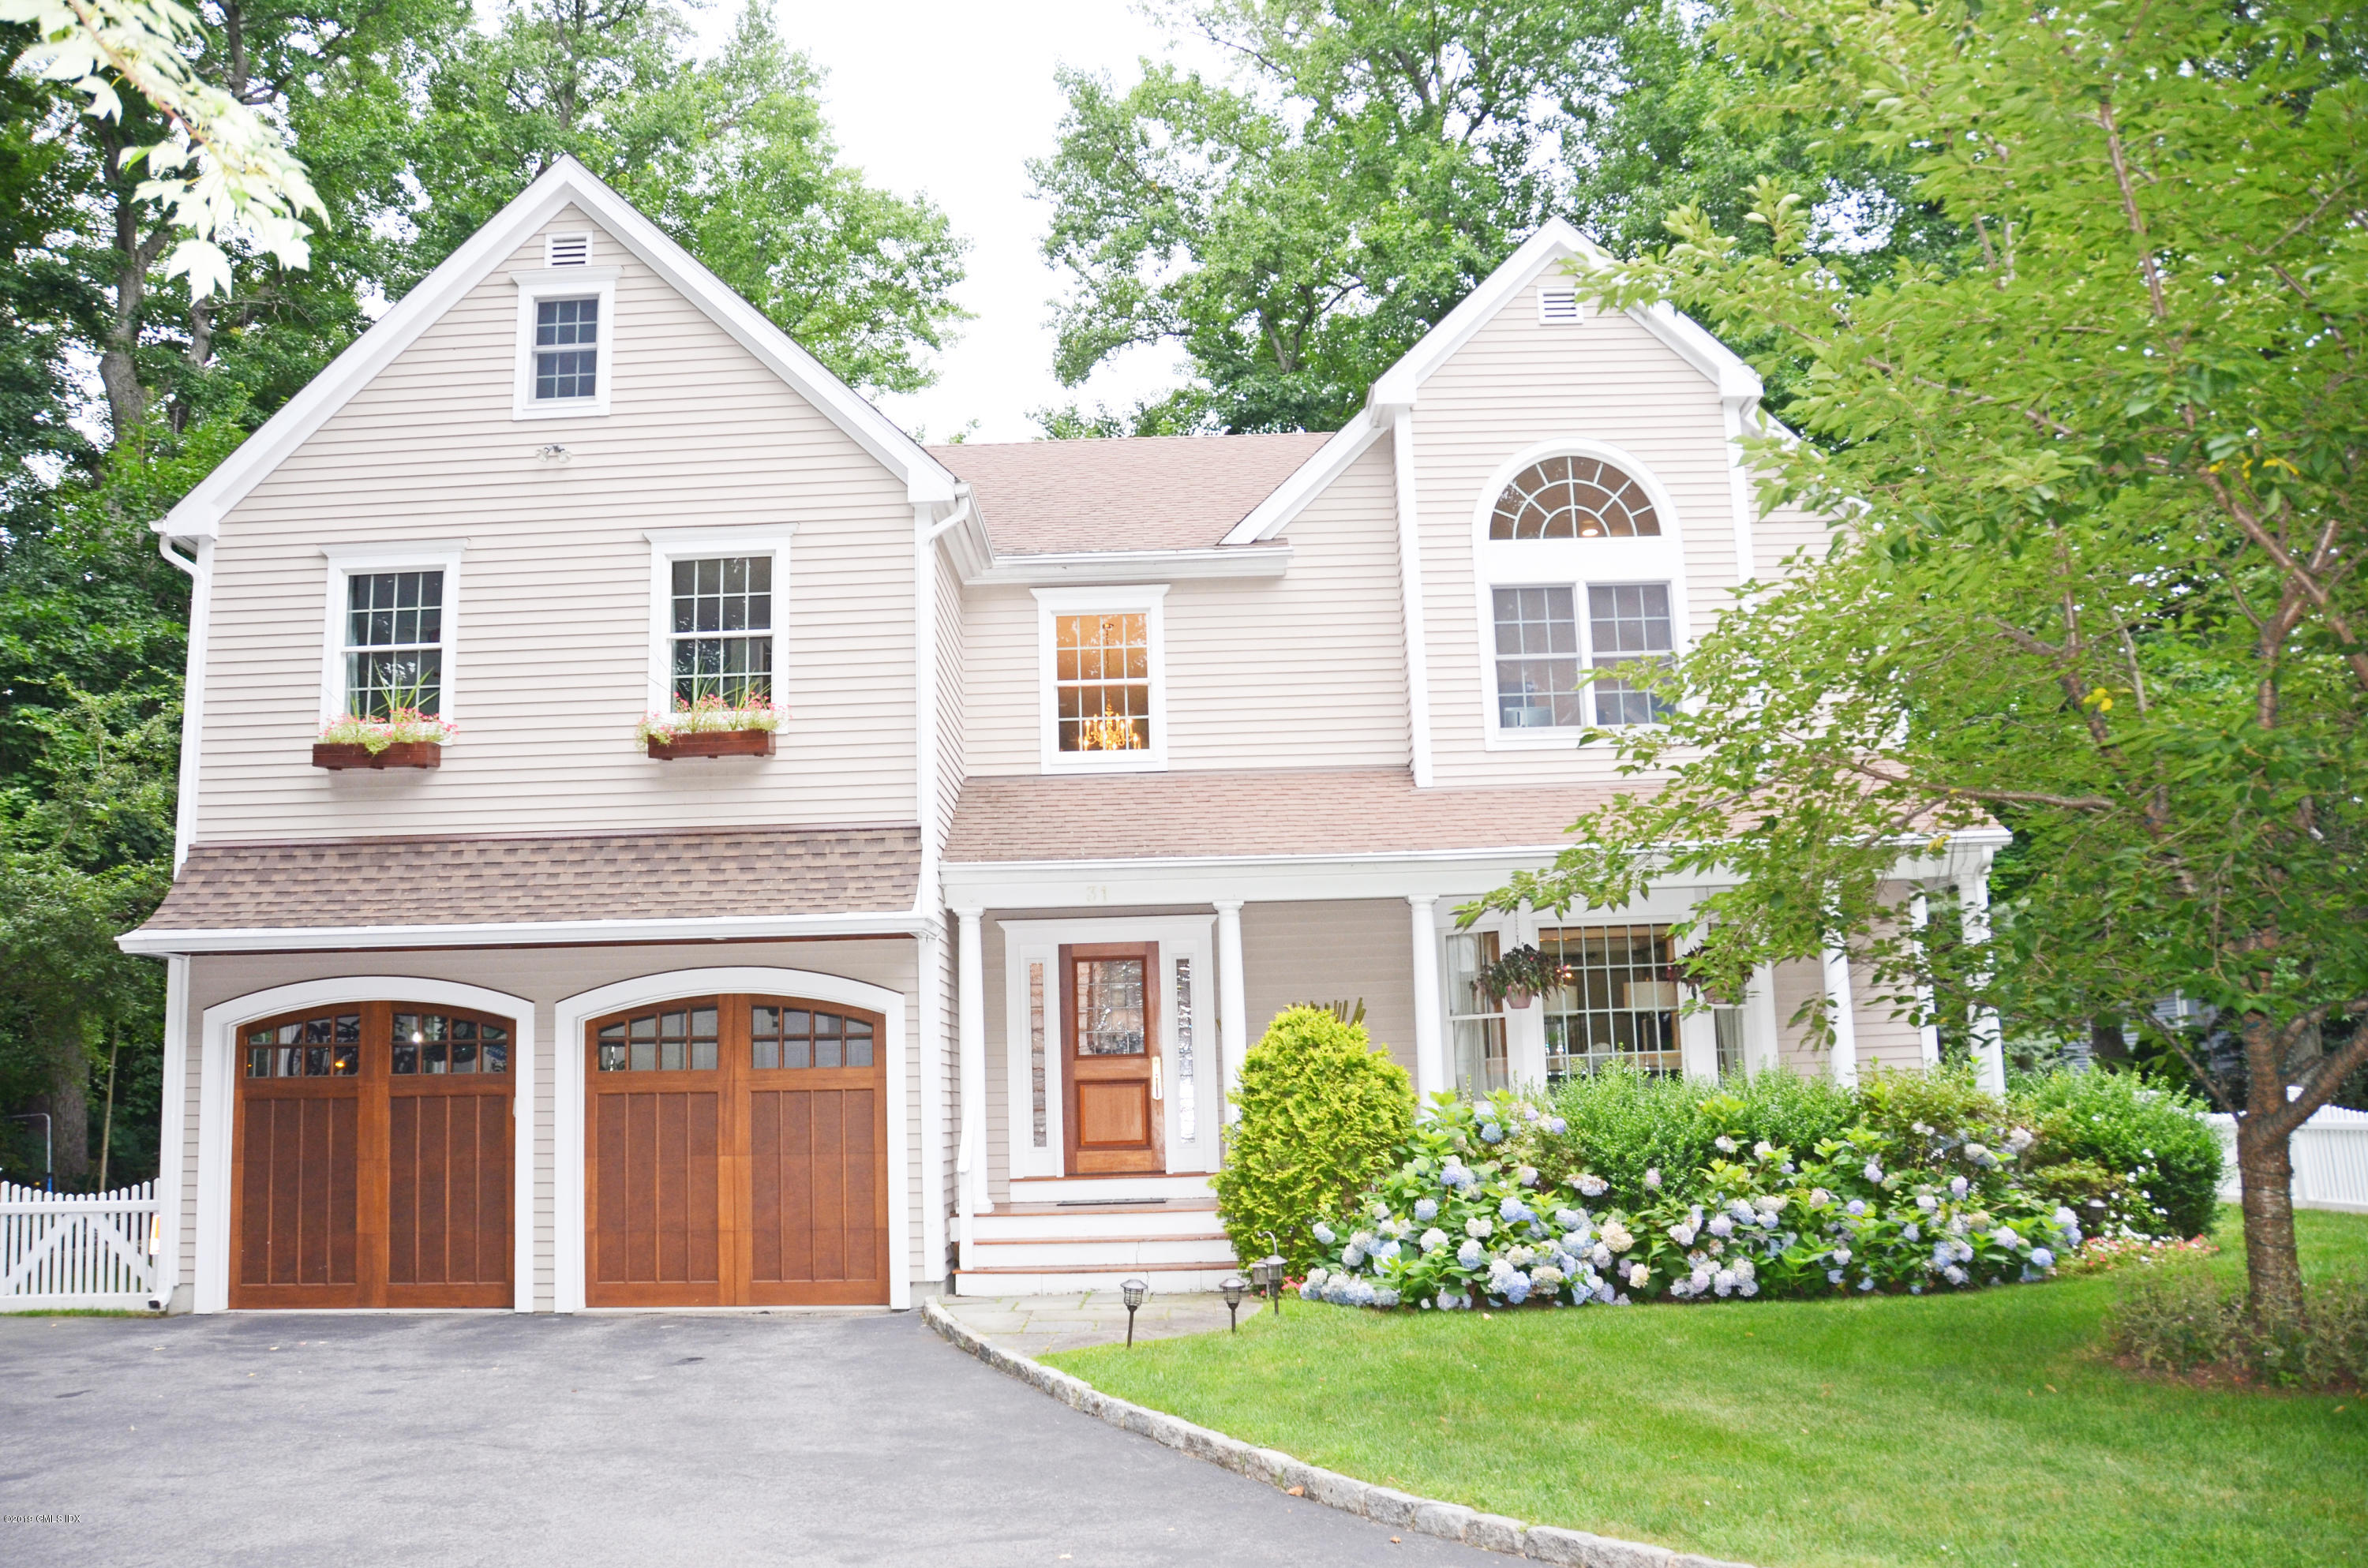 31 Lockwood Road - Riverside, Connecticut